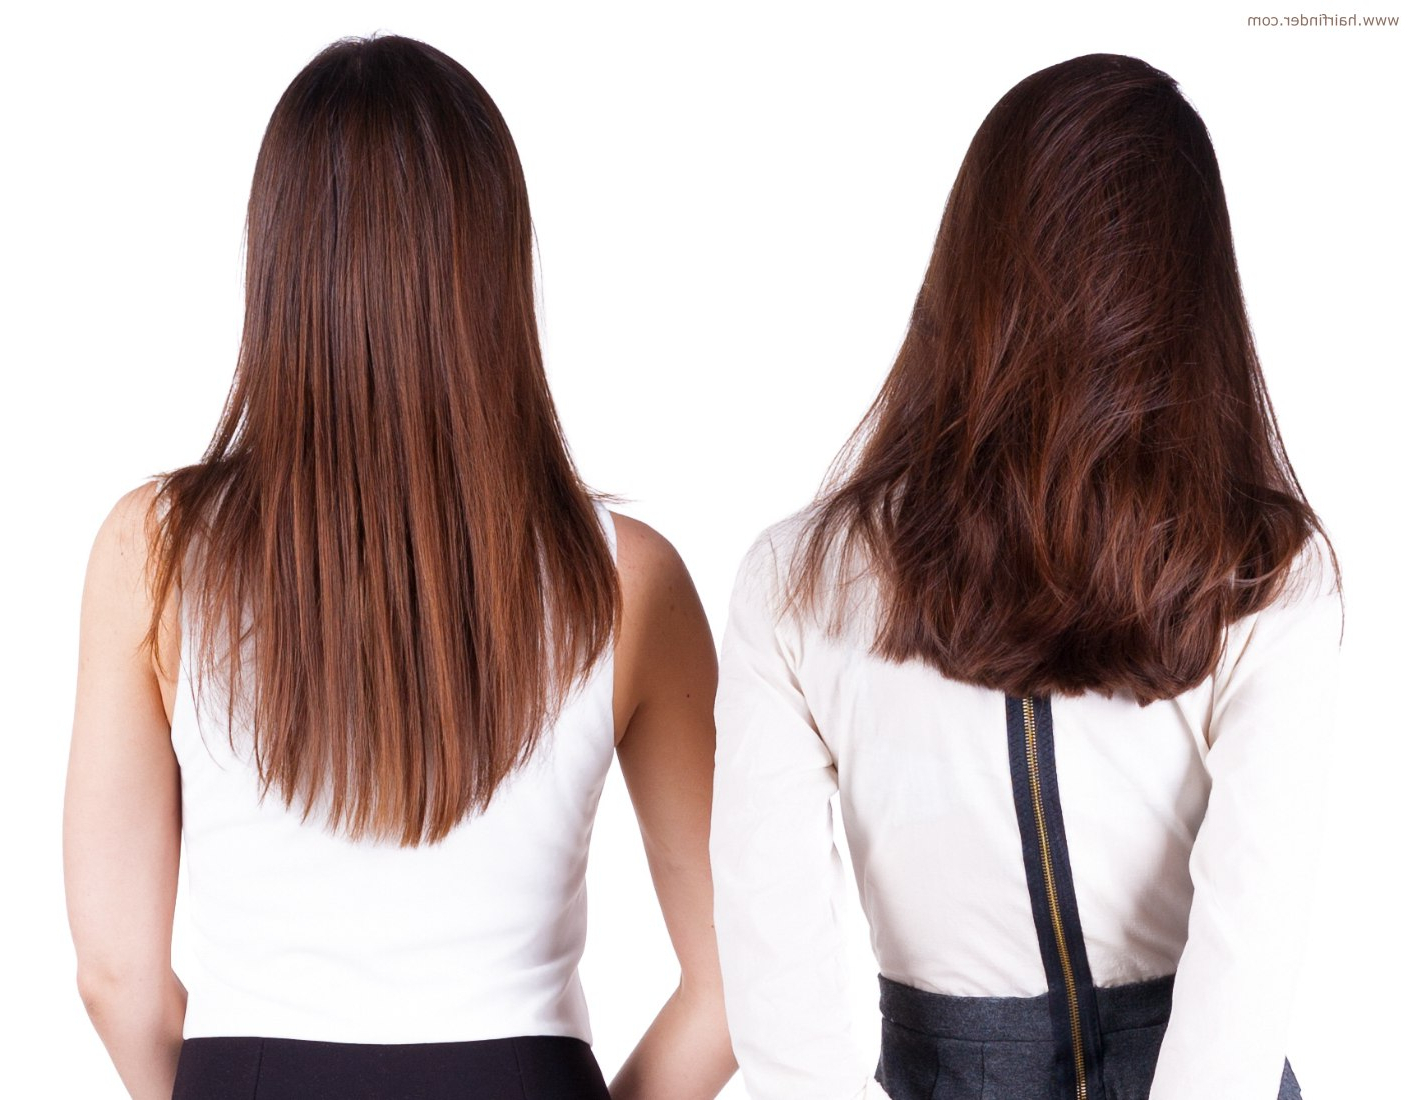 Cut The Back Of Long Hair In A U Shape, V Shape Or A Straight Line Pertaining To V Shaped Layered Short Haircuts (View 13 of 25)